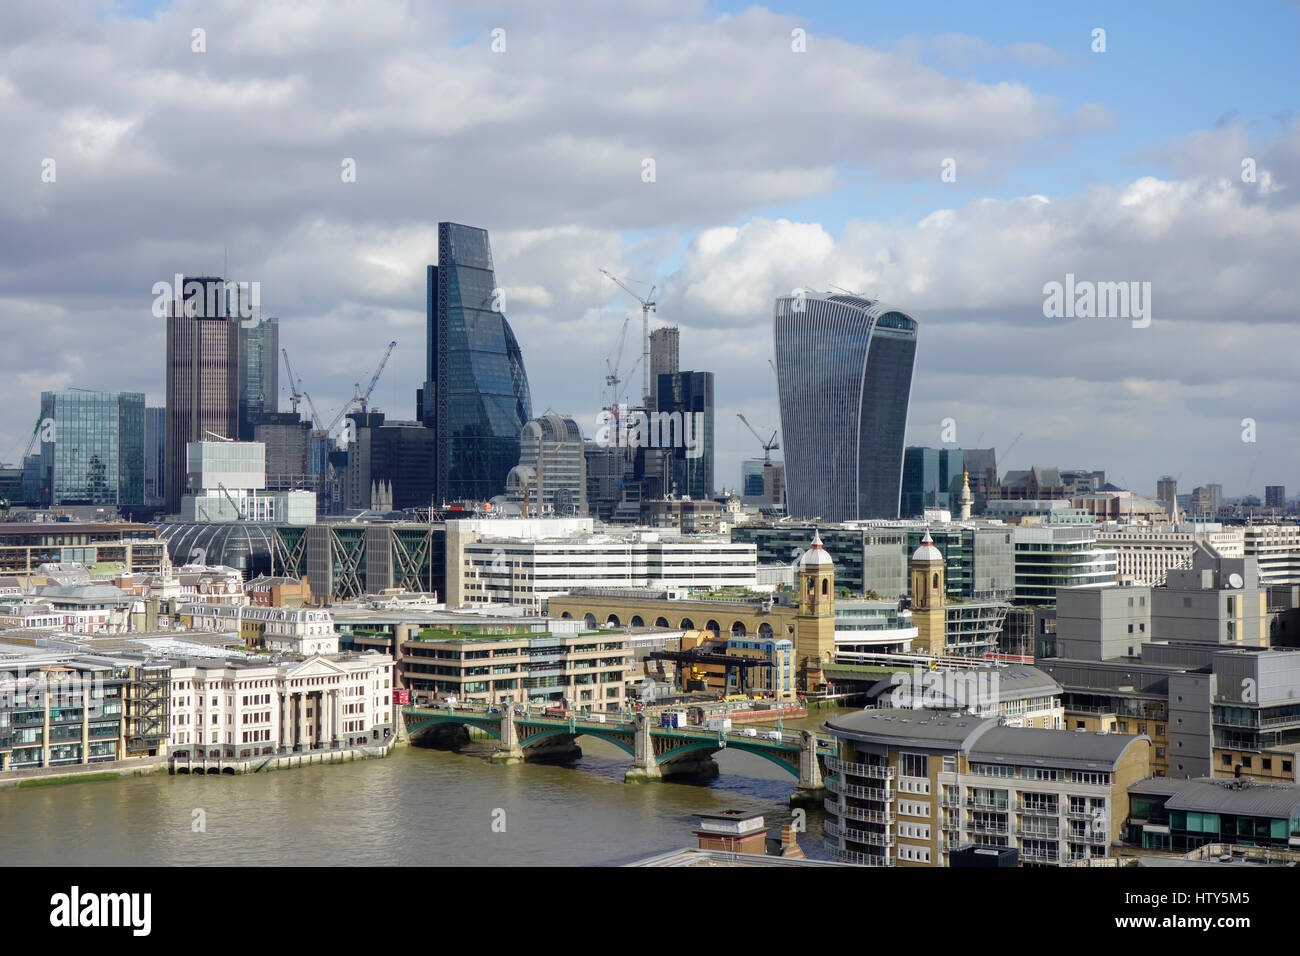 City of London skyline, London, England, United Kingdom, Europe - Stock Image